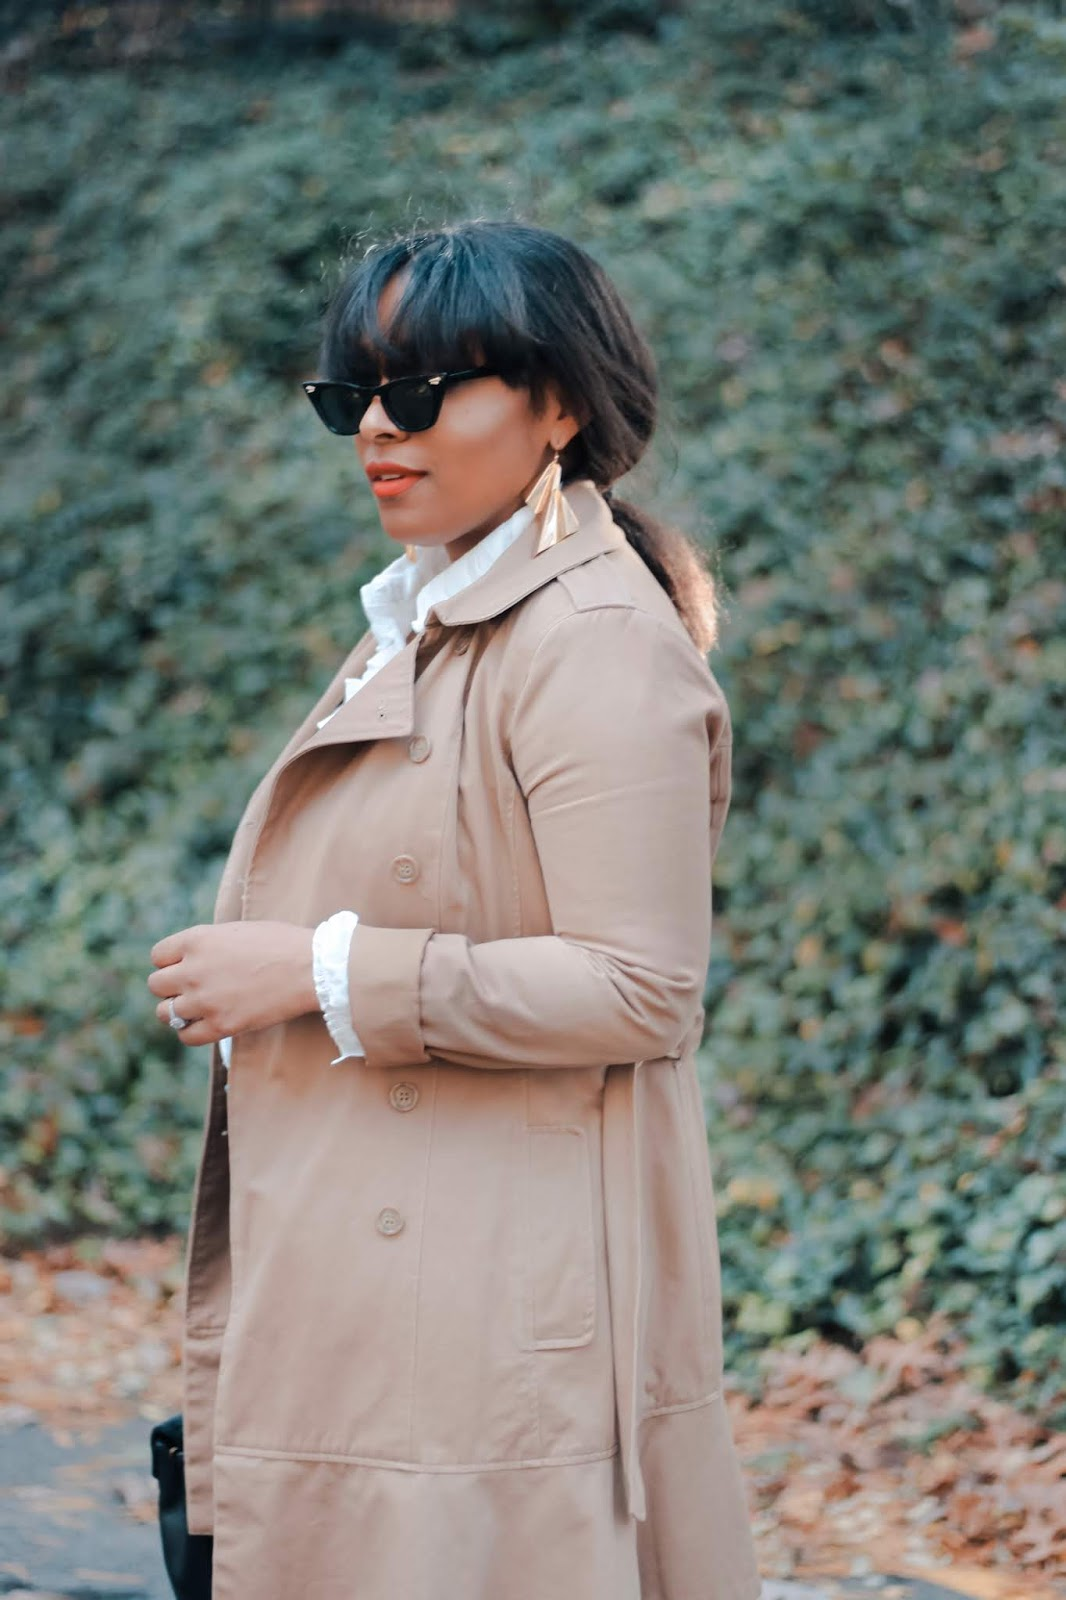 trench coat, investment pieces, fall looks, dcbloggers, fall fashion, fall boots